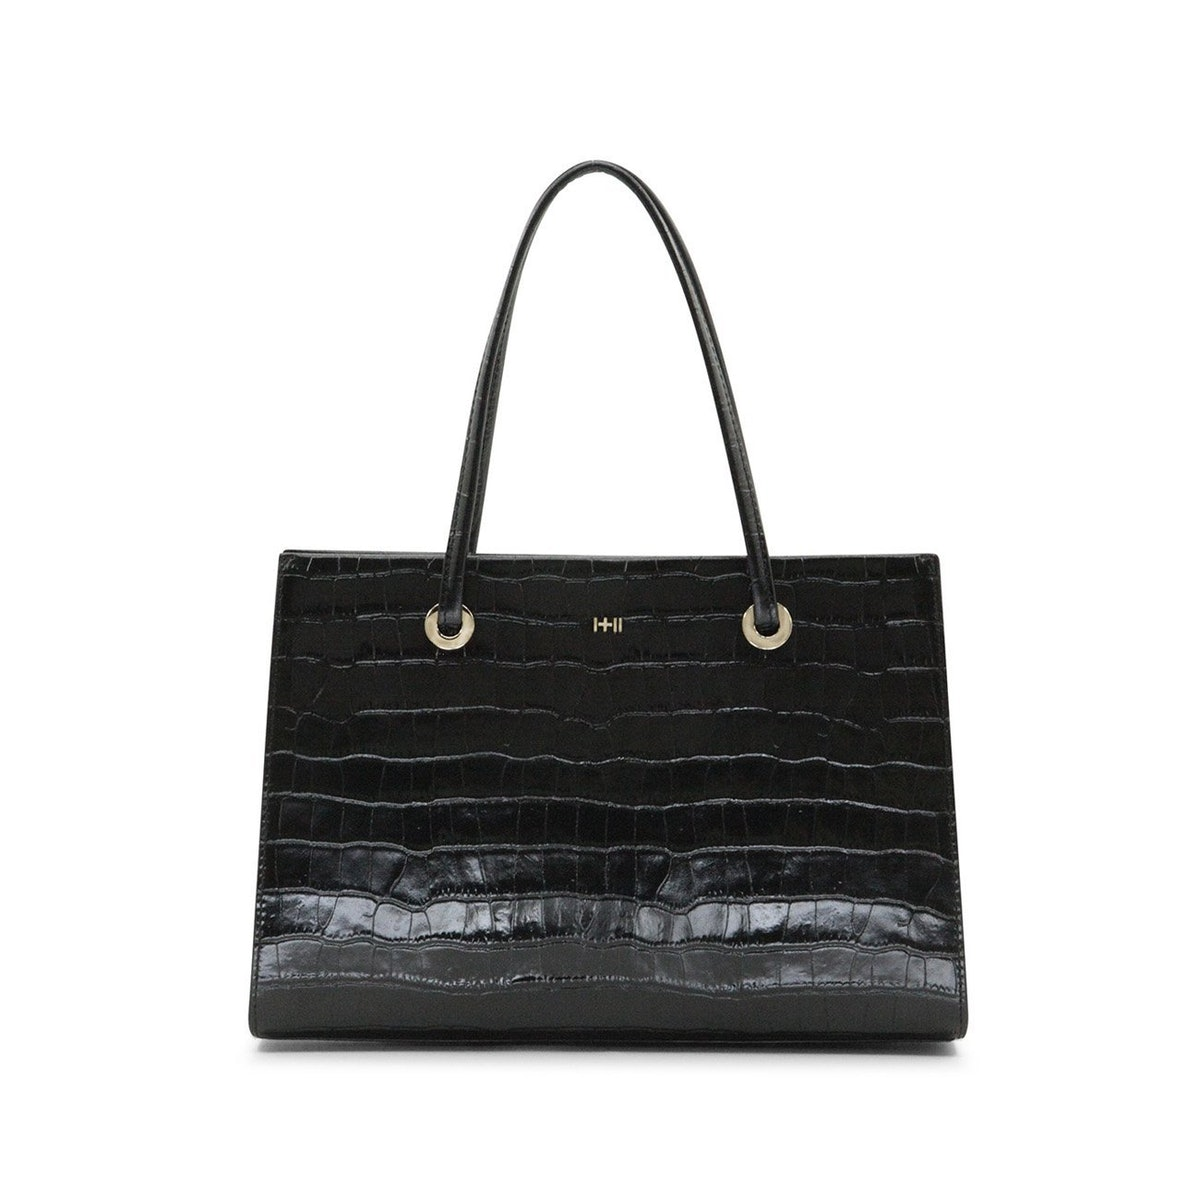 The Lydiana Bag